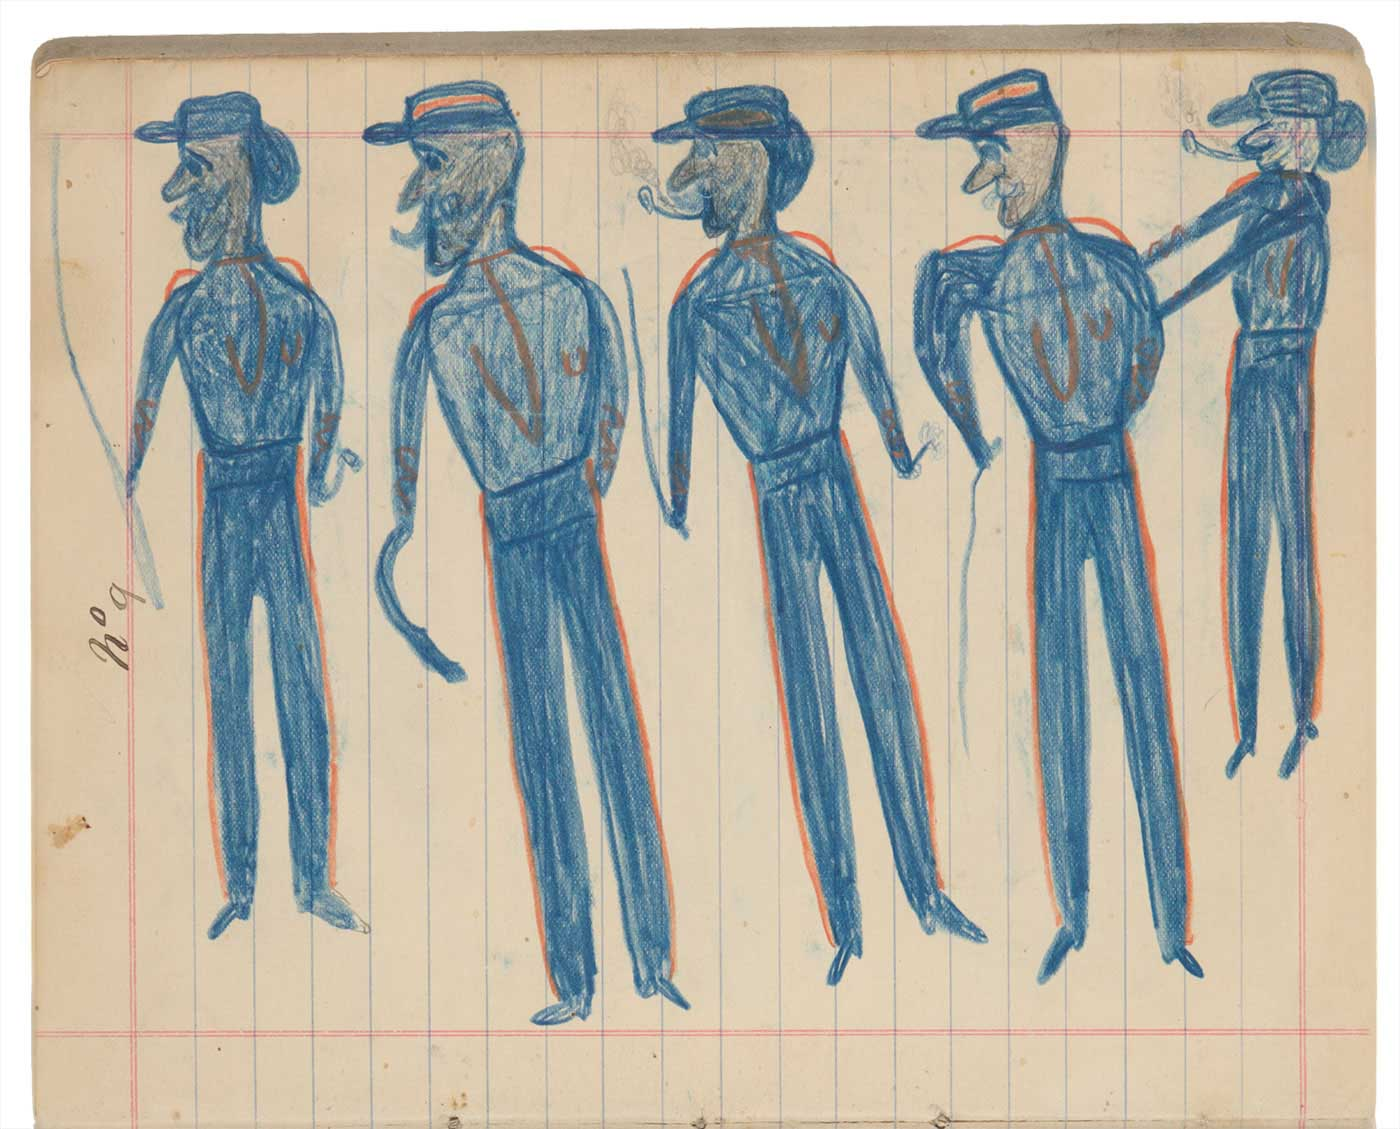 Sketchbook drawings of fiveblue figures wearing hats - click to view larger image